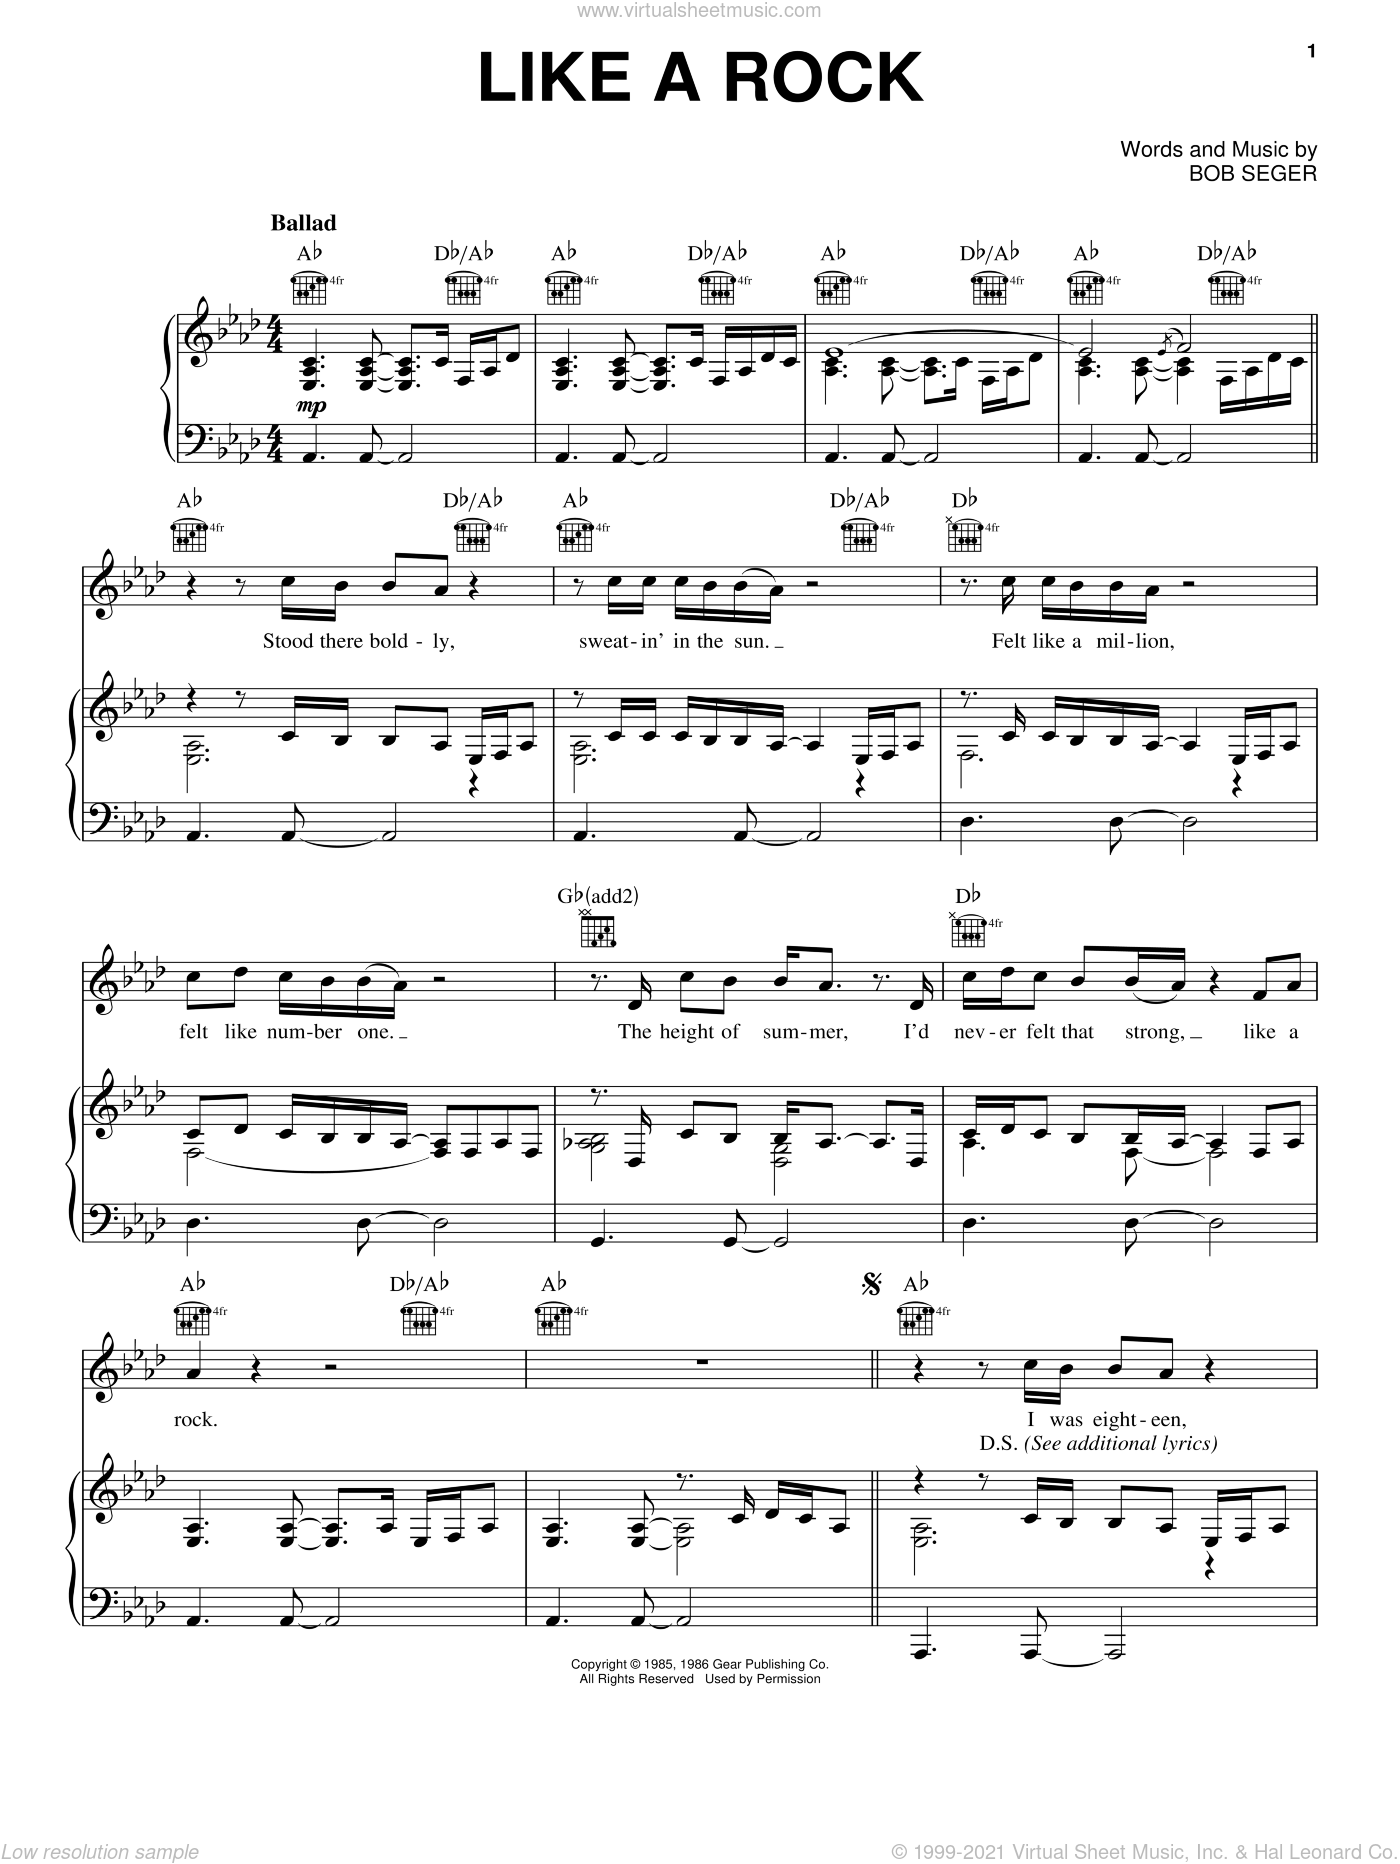 Like A Rock sheet music for voice, piano or guitar by Bob Seger, intermediate skill level